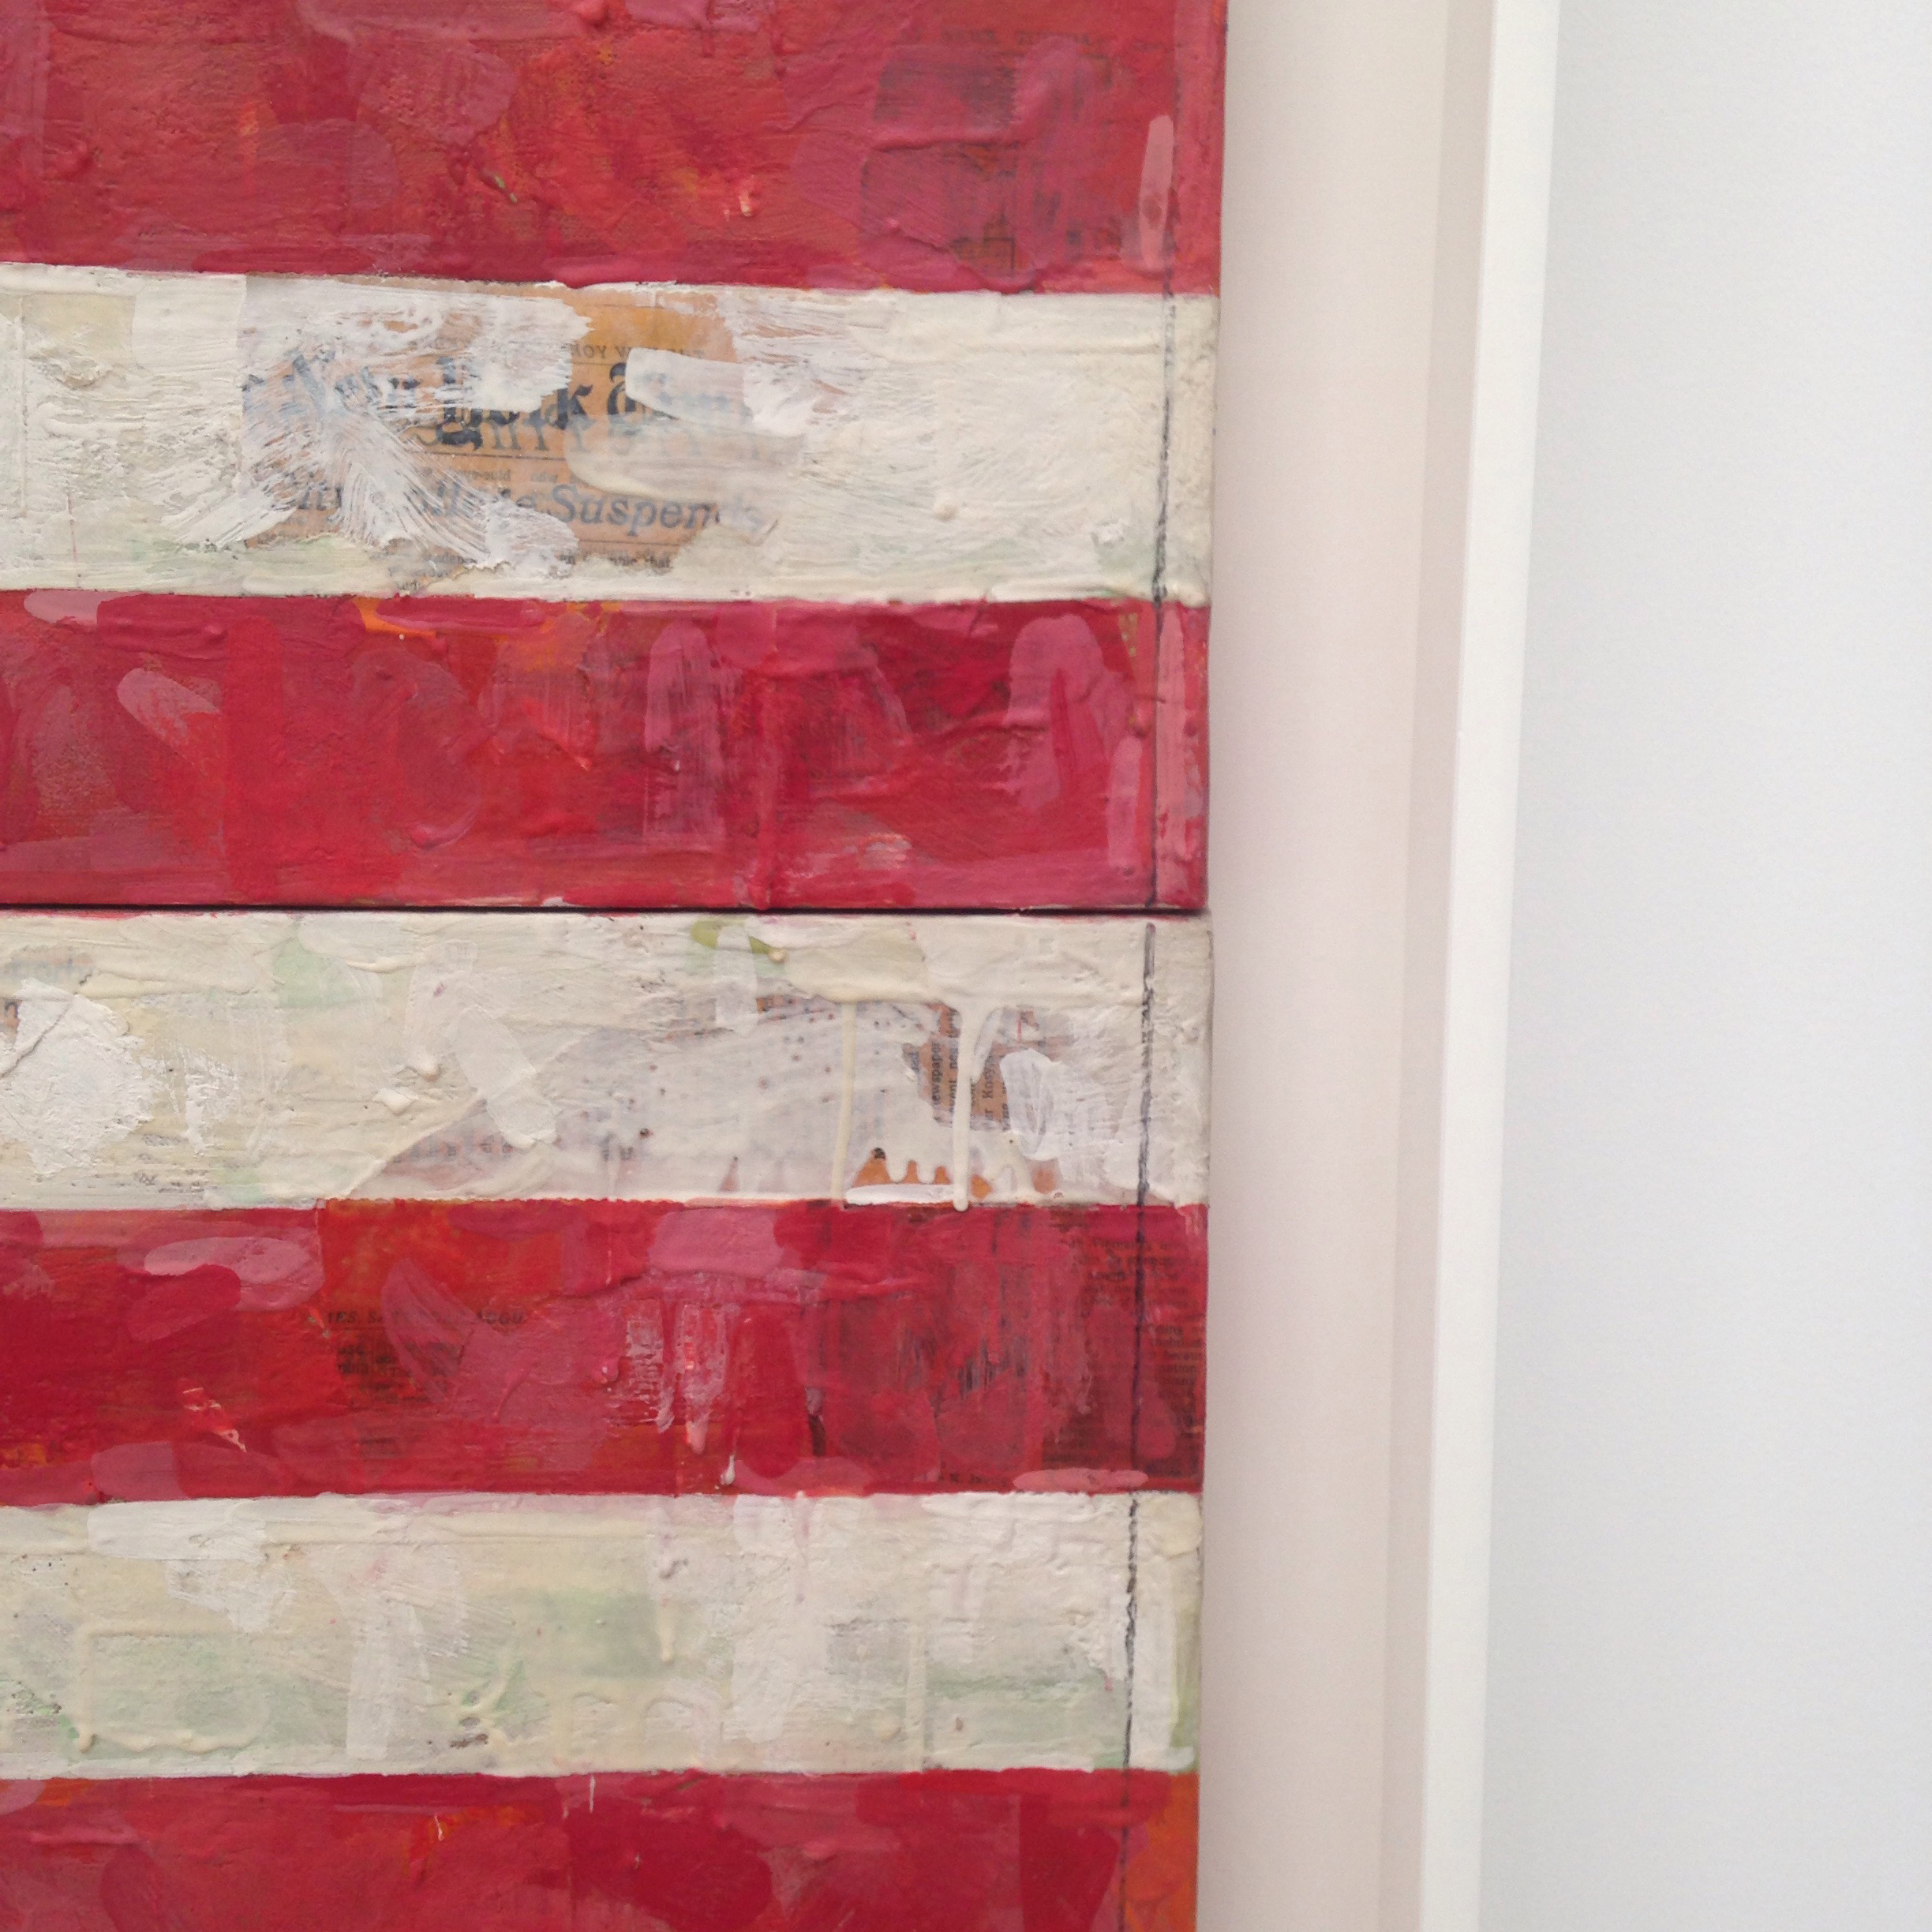 Jasper Johns, Flag (detail), 1967, encaustic and collage on canvas (three panels)